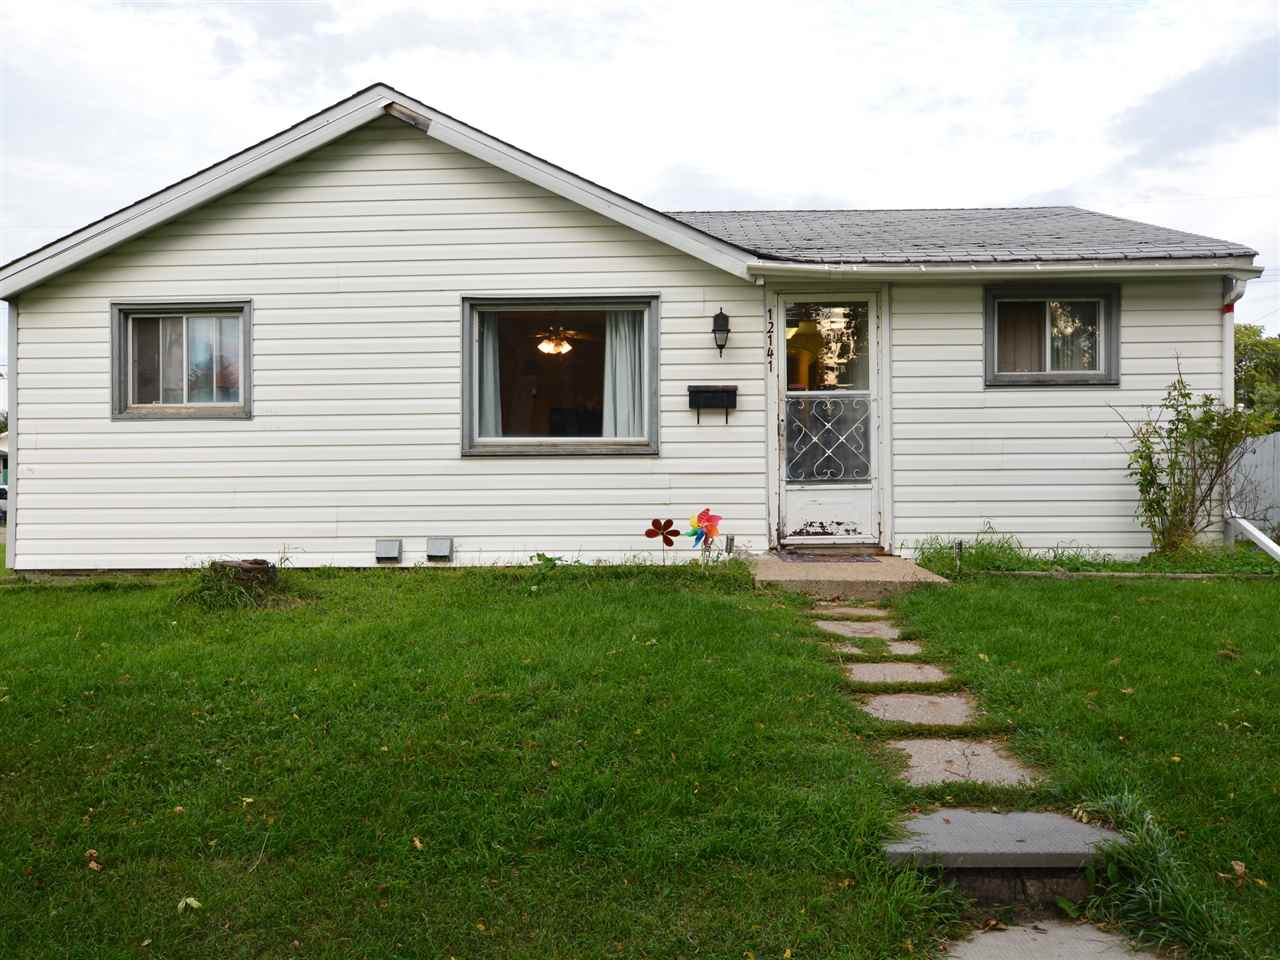 Older 908 sq ft basementless bungalow on 50' x 124.43' corner lot with an older single garage. House is still livable but requires cosmetic work. The current owners have lived here for 18 years. The property is in the process of being subdivided into two 25' x 124.43' lots which will be offered for sale at $99,900 each. Also option of a duplex or possibly a fourplex on this lot subject of course to final City approval.